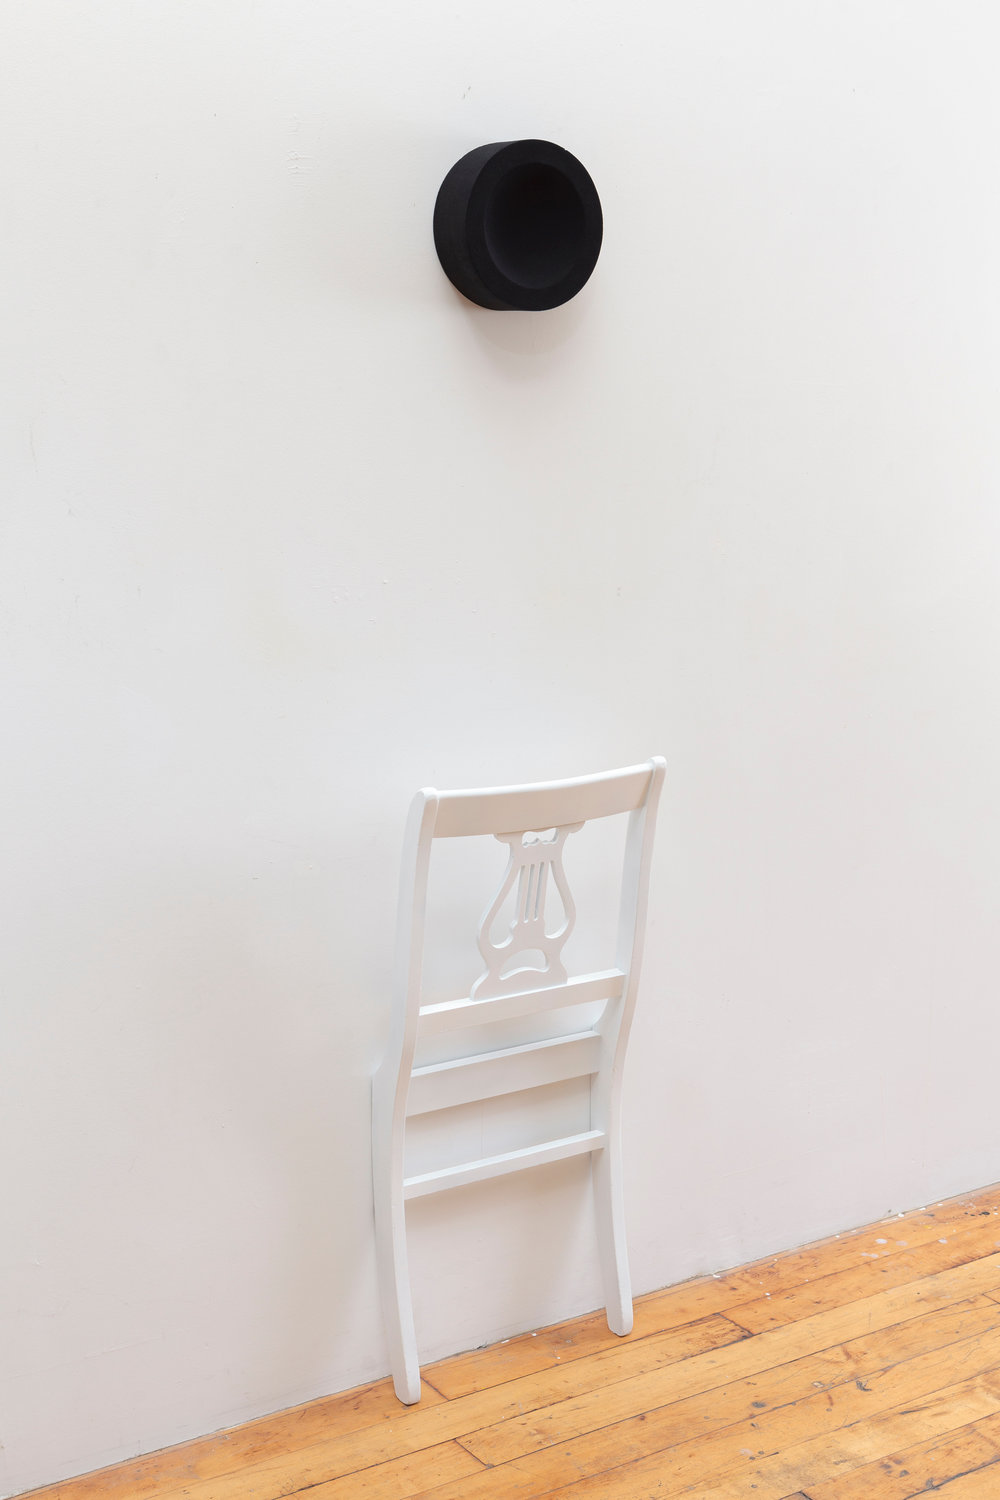 hymn,   2014  wood, paint and black flocking  62 x 16 x 7 inches